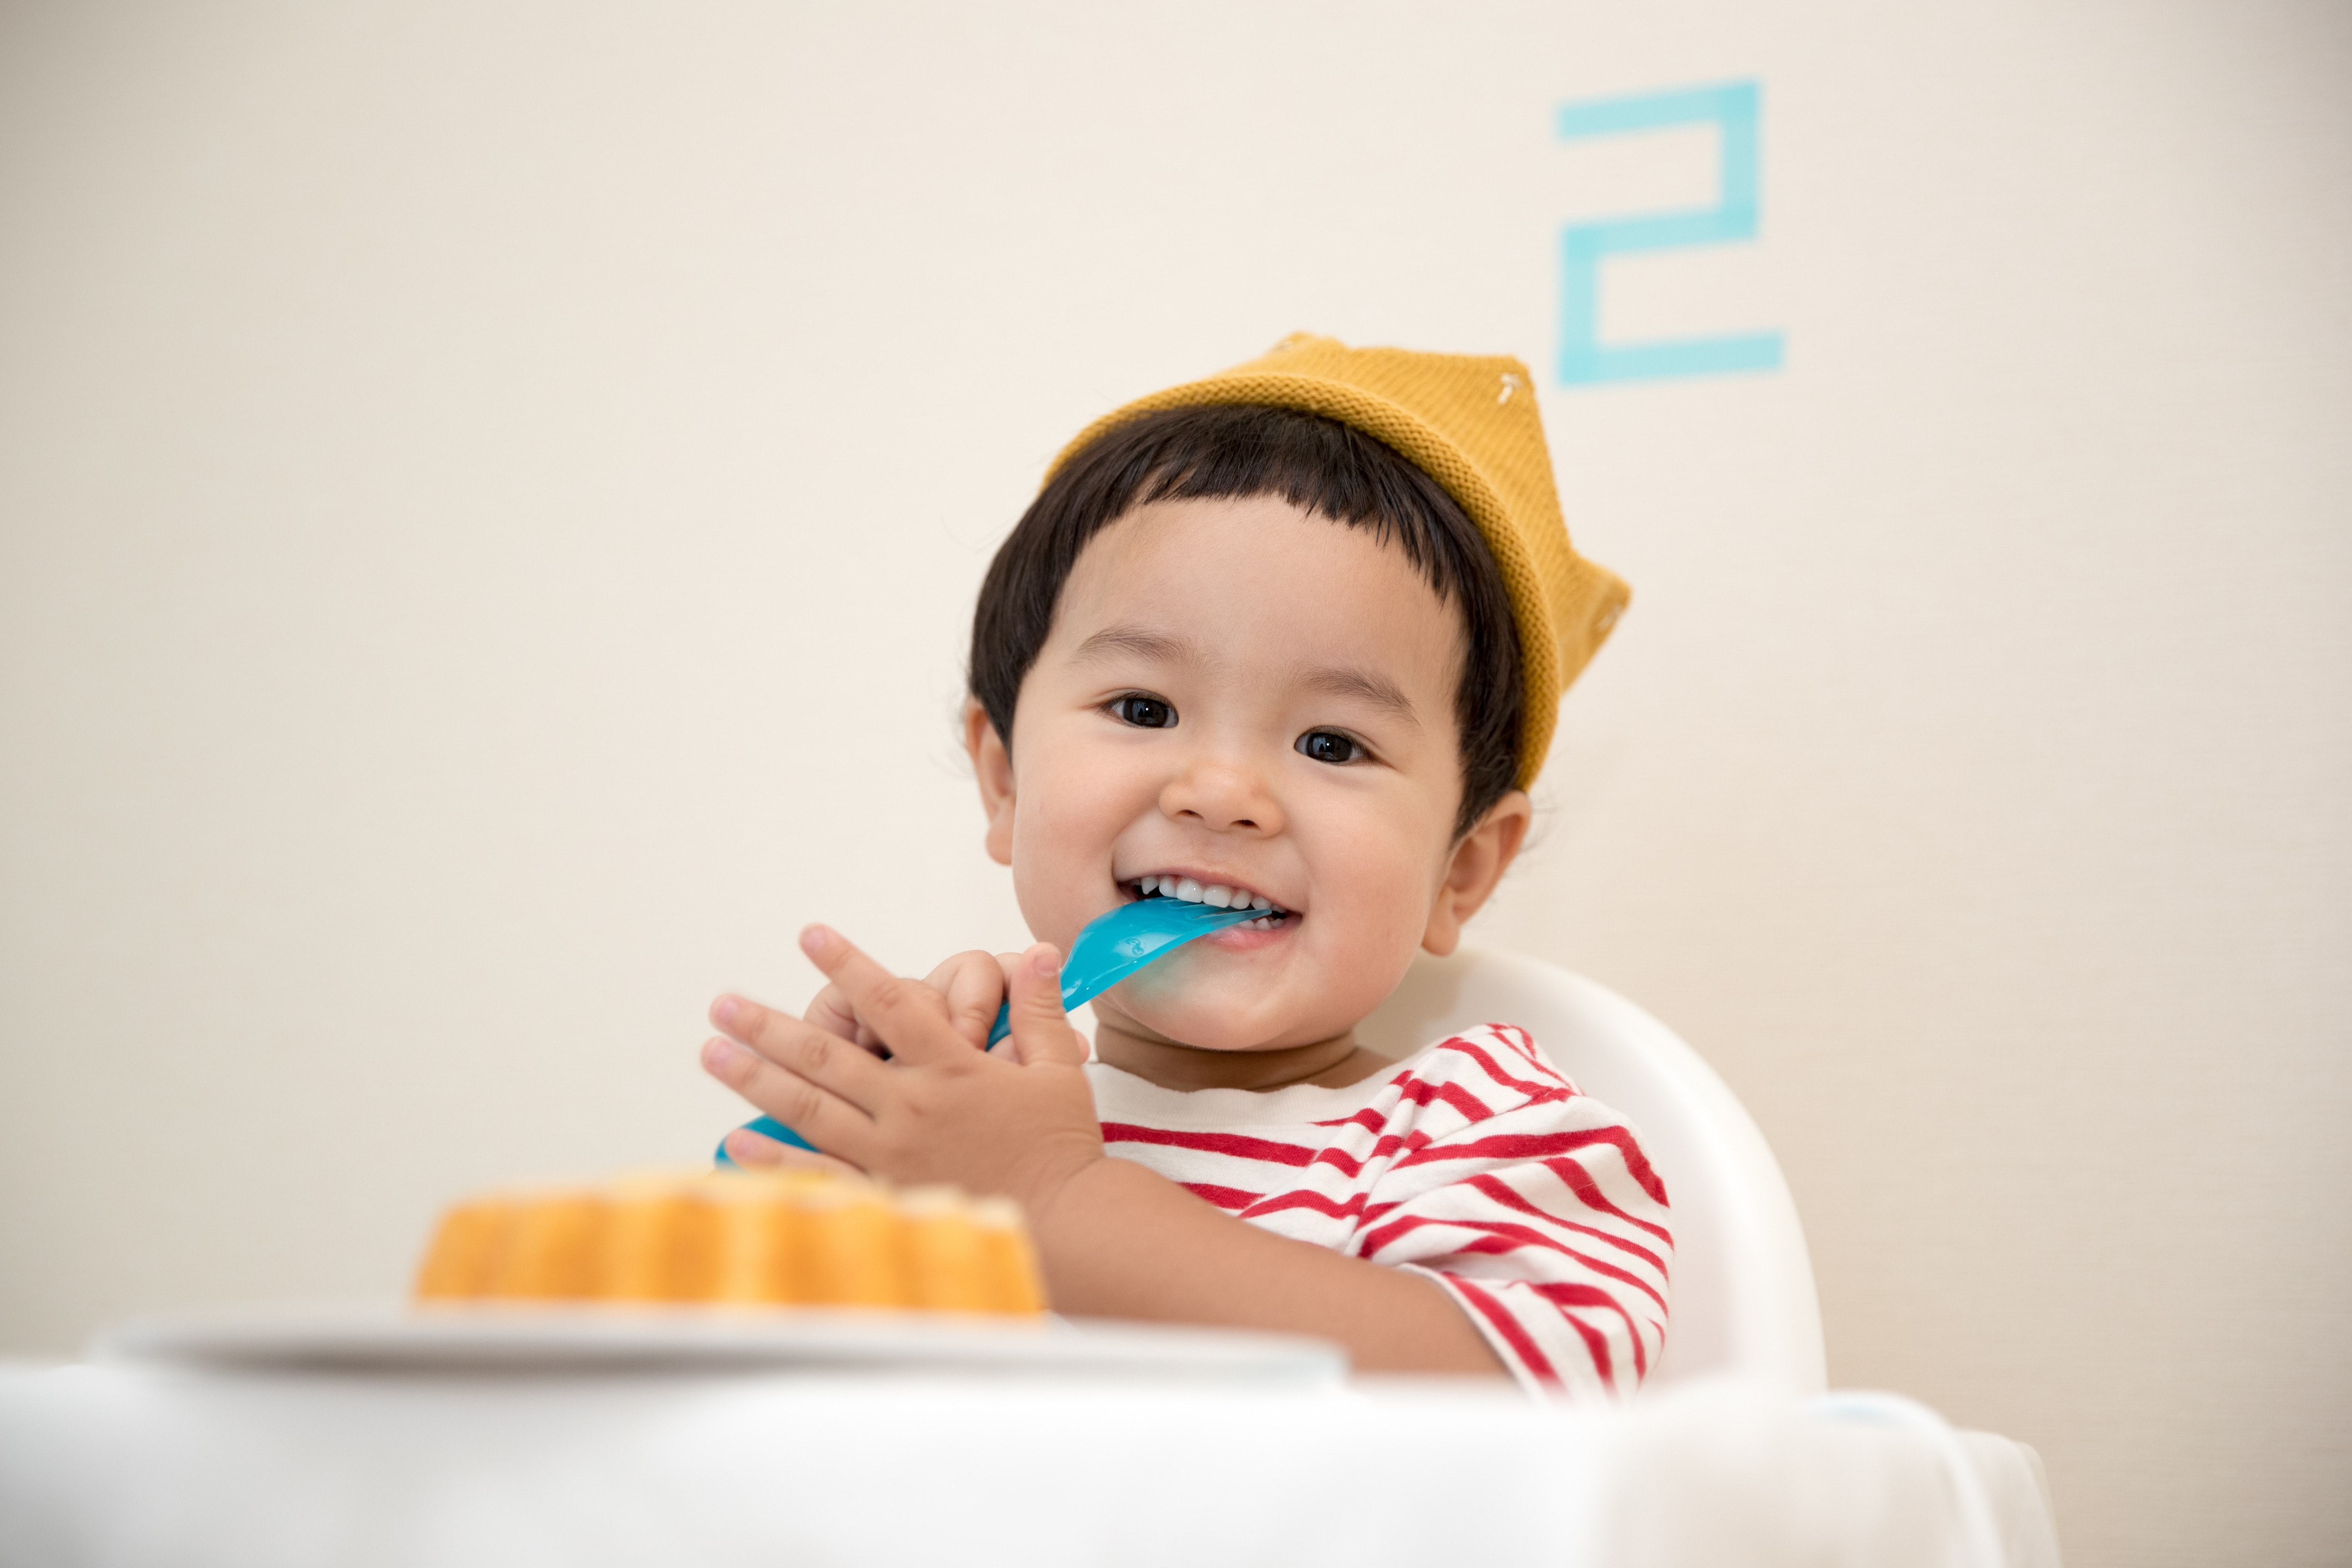 toddler with fork in mouth